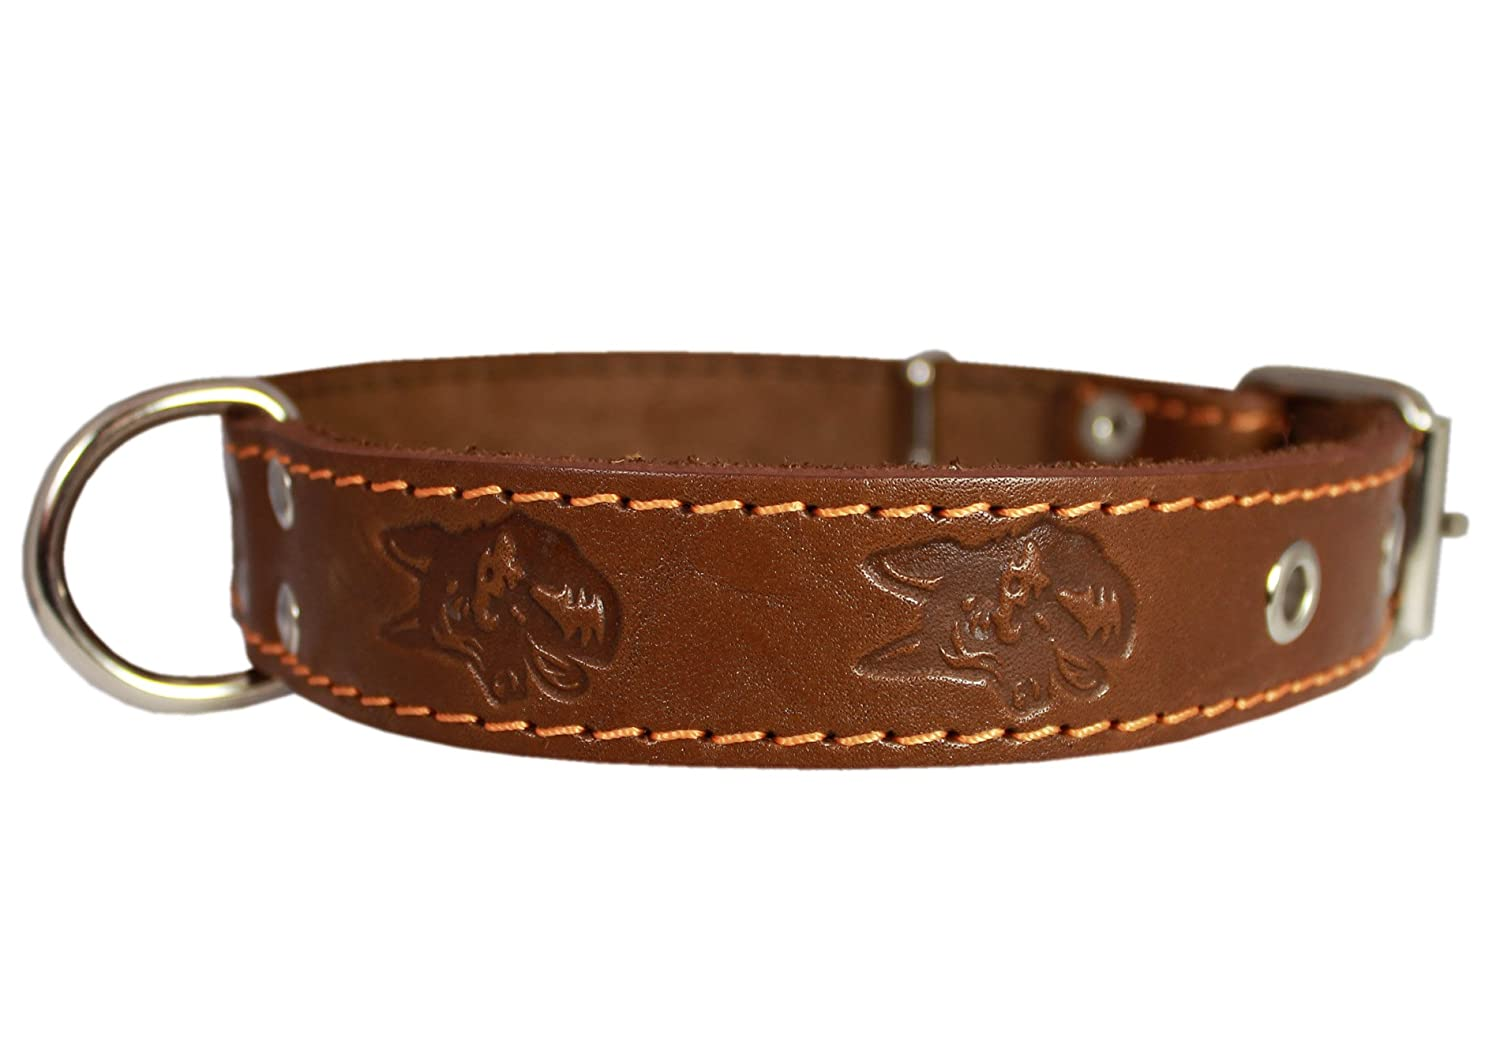 Genuine Leather Dog Collar 1.25 x22  Fits 15 -20  Neck, Brown